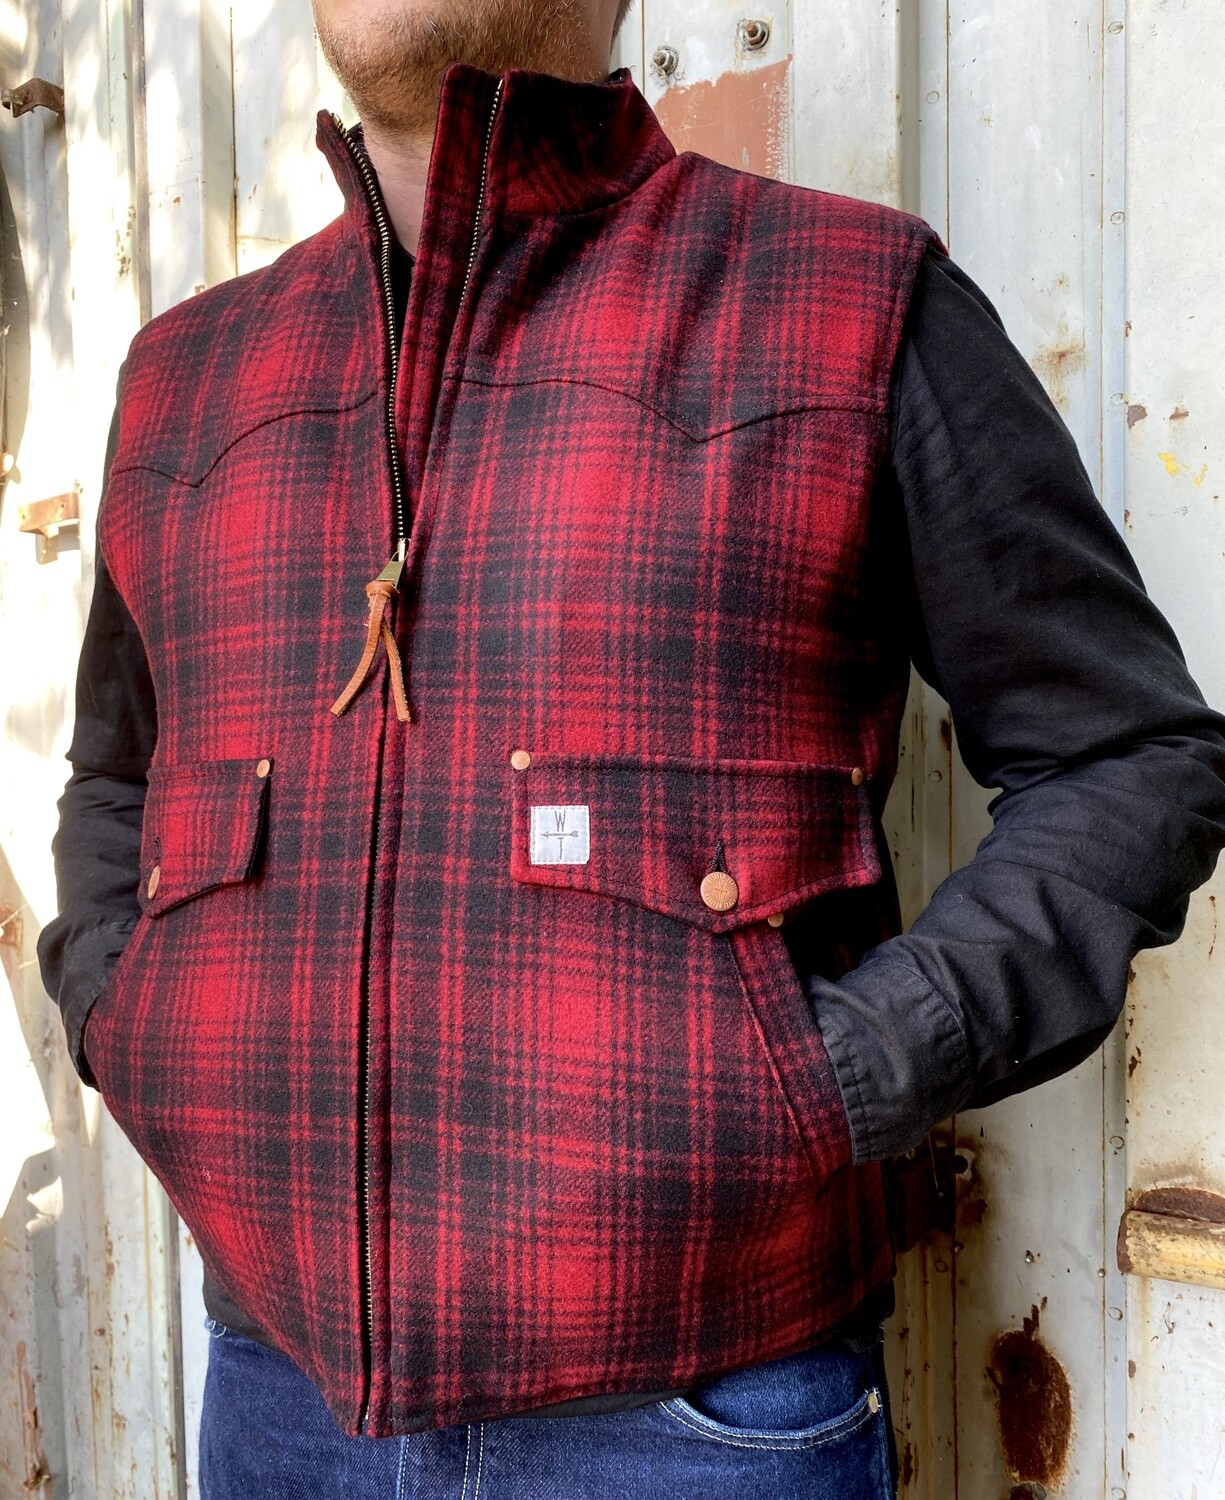 DROVER WOOL-red plaid